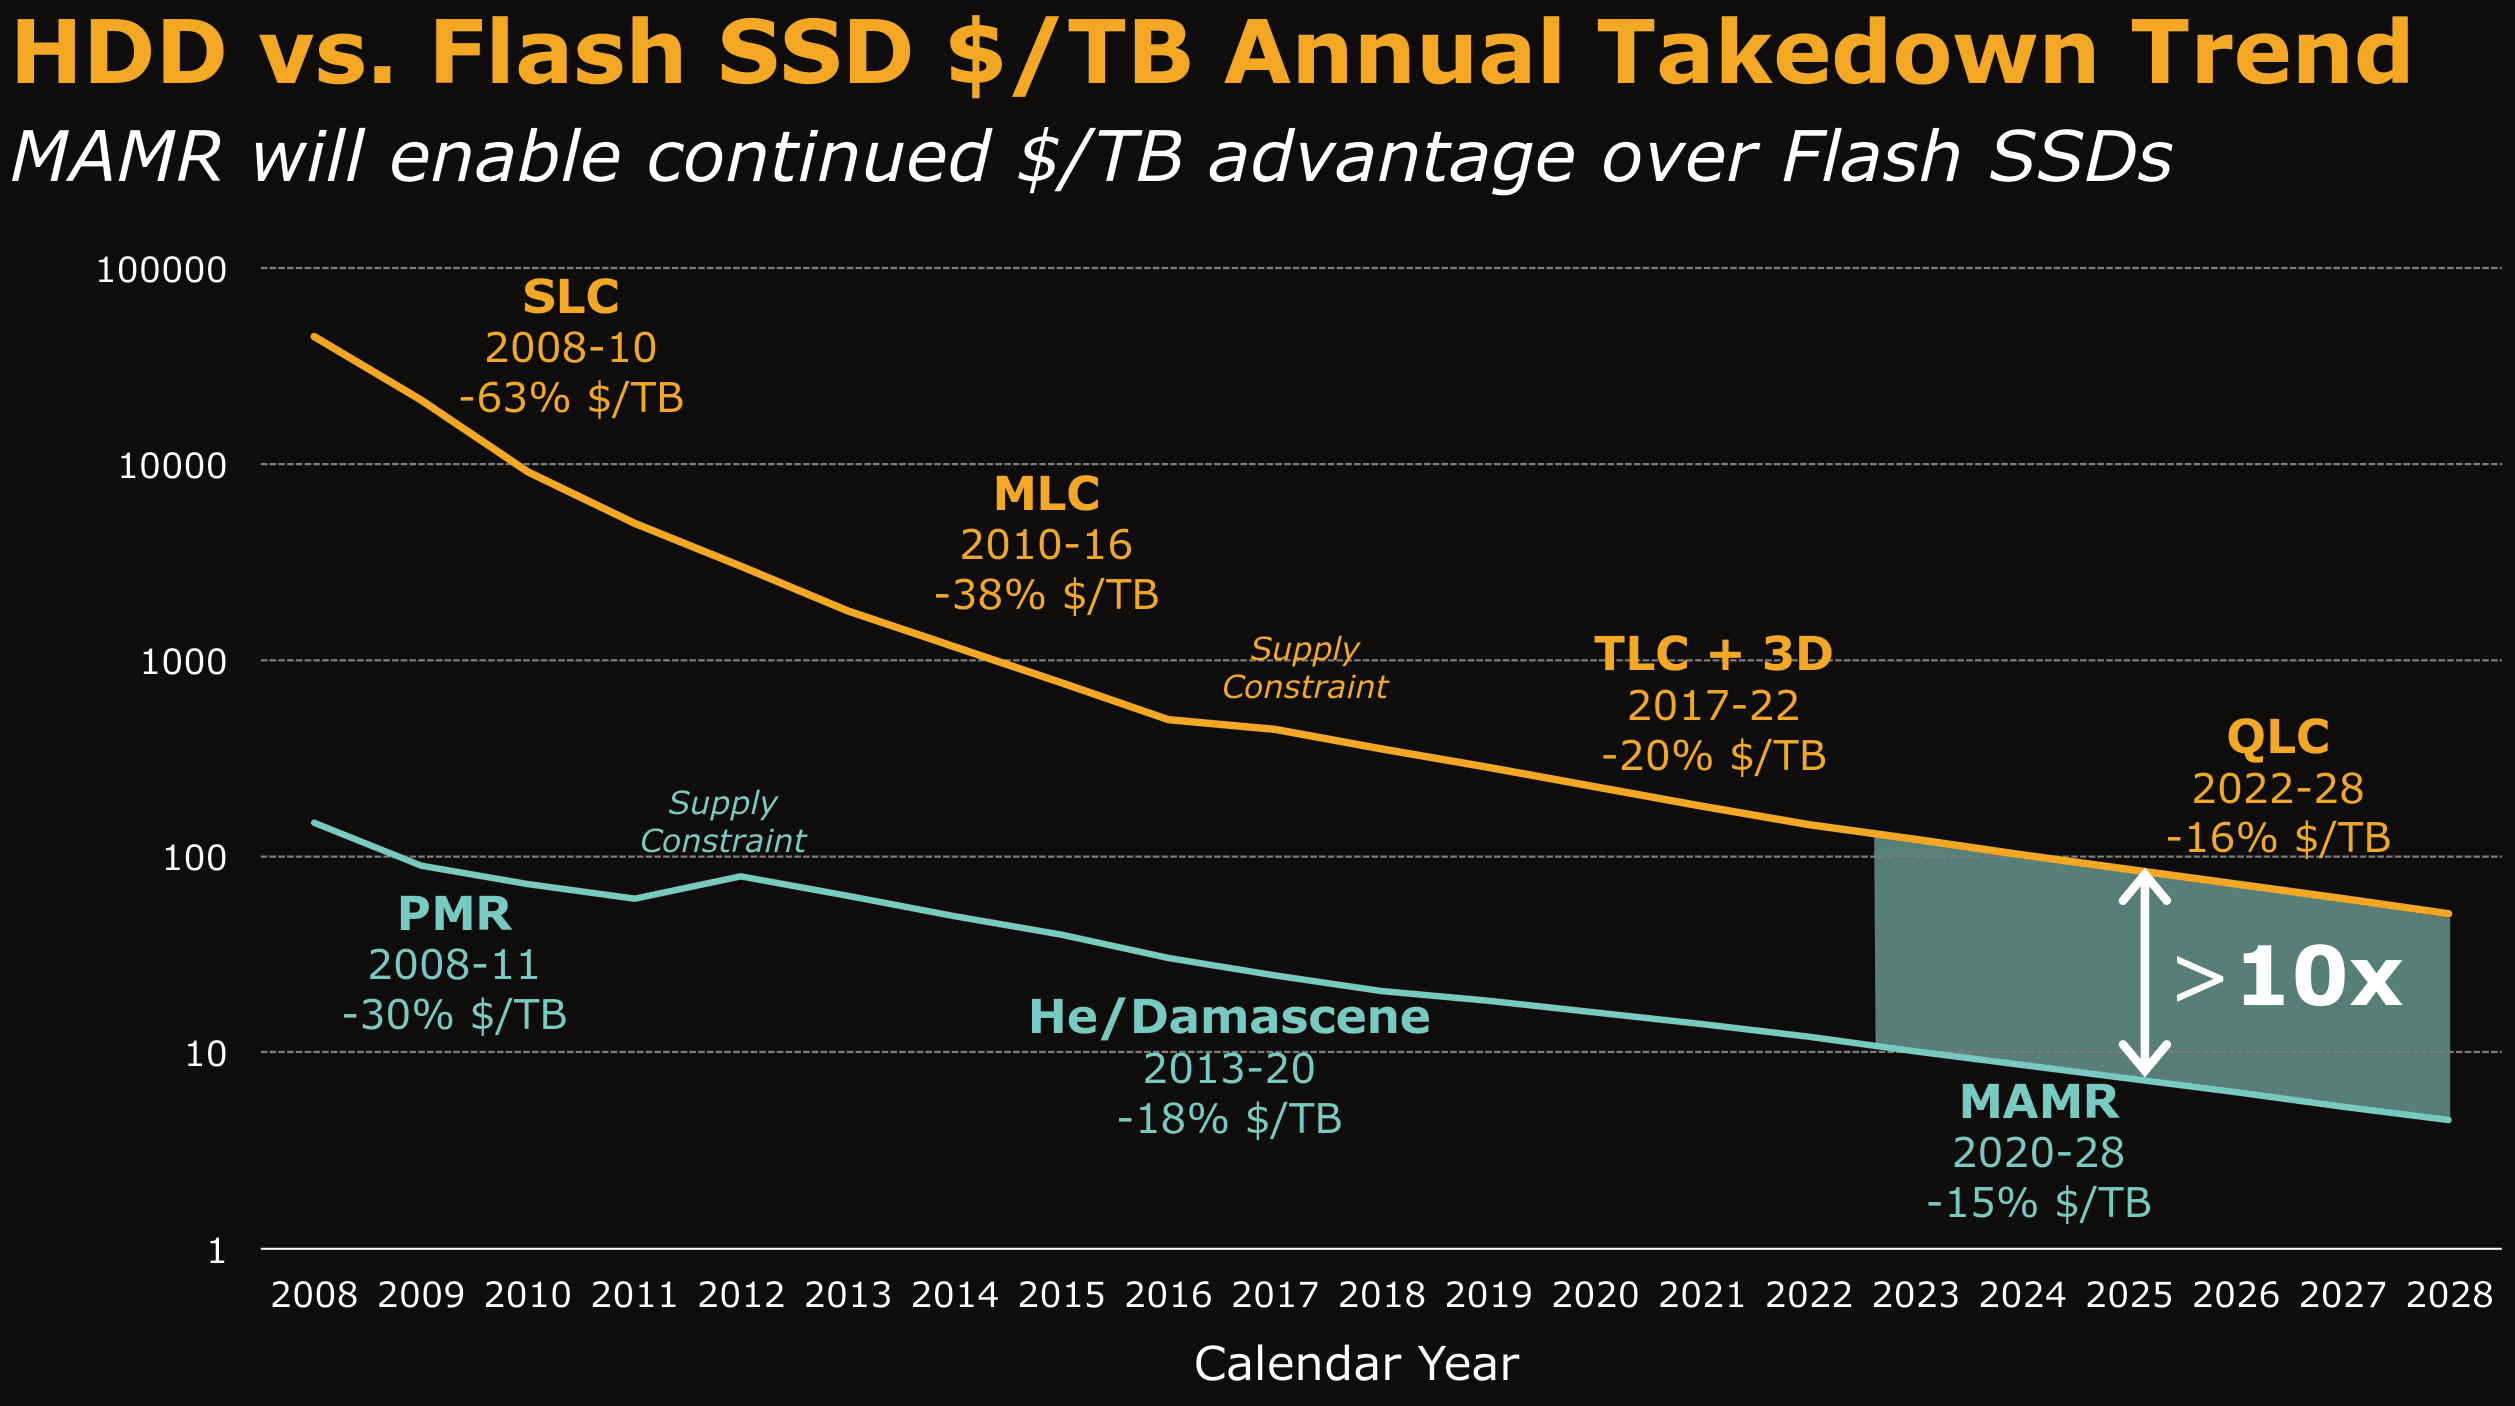 HDD vs Flash SSD USD per terabyte Annual Takedown Trend